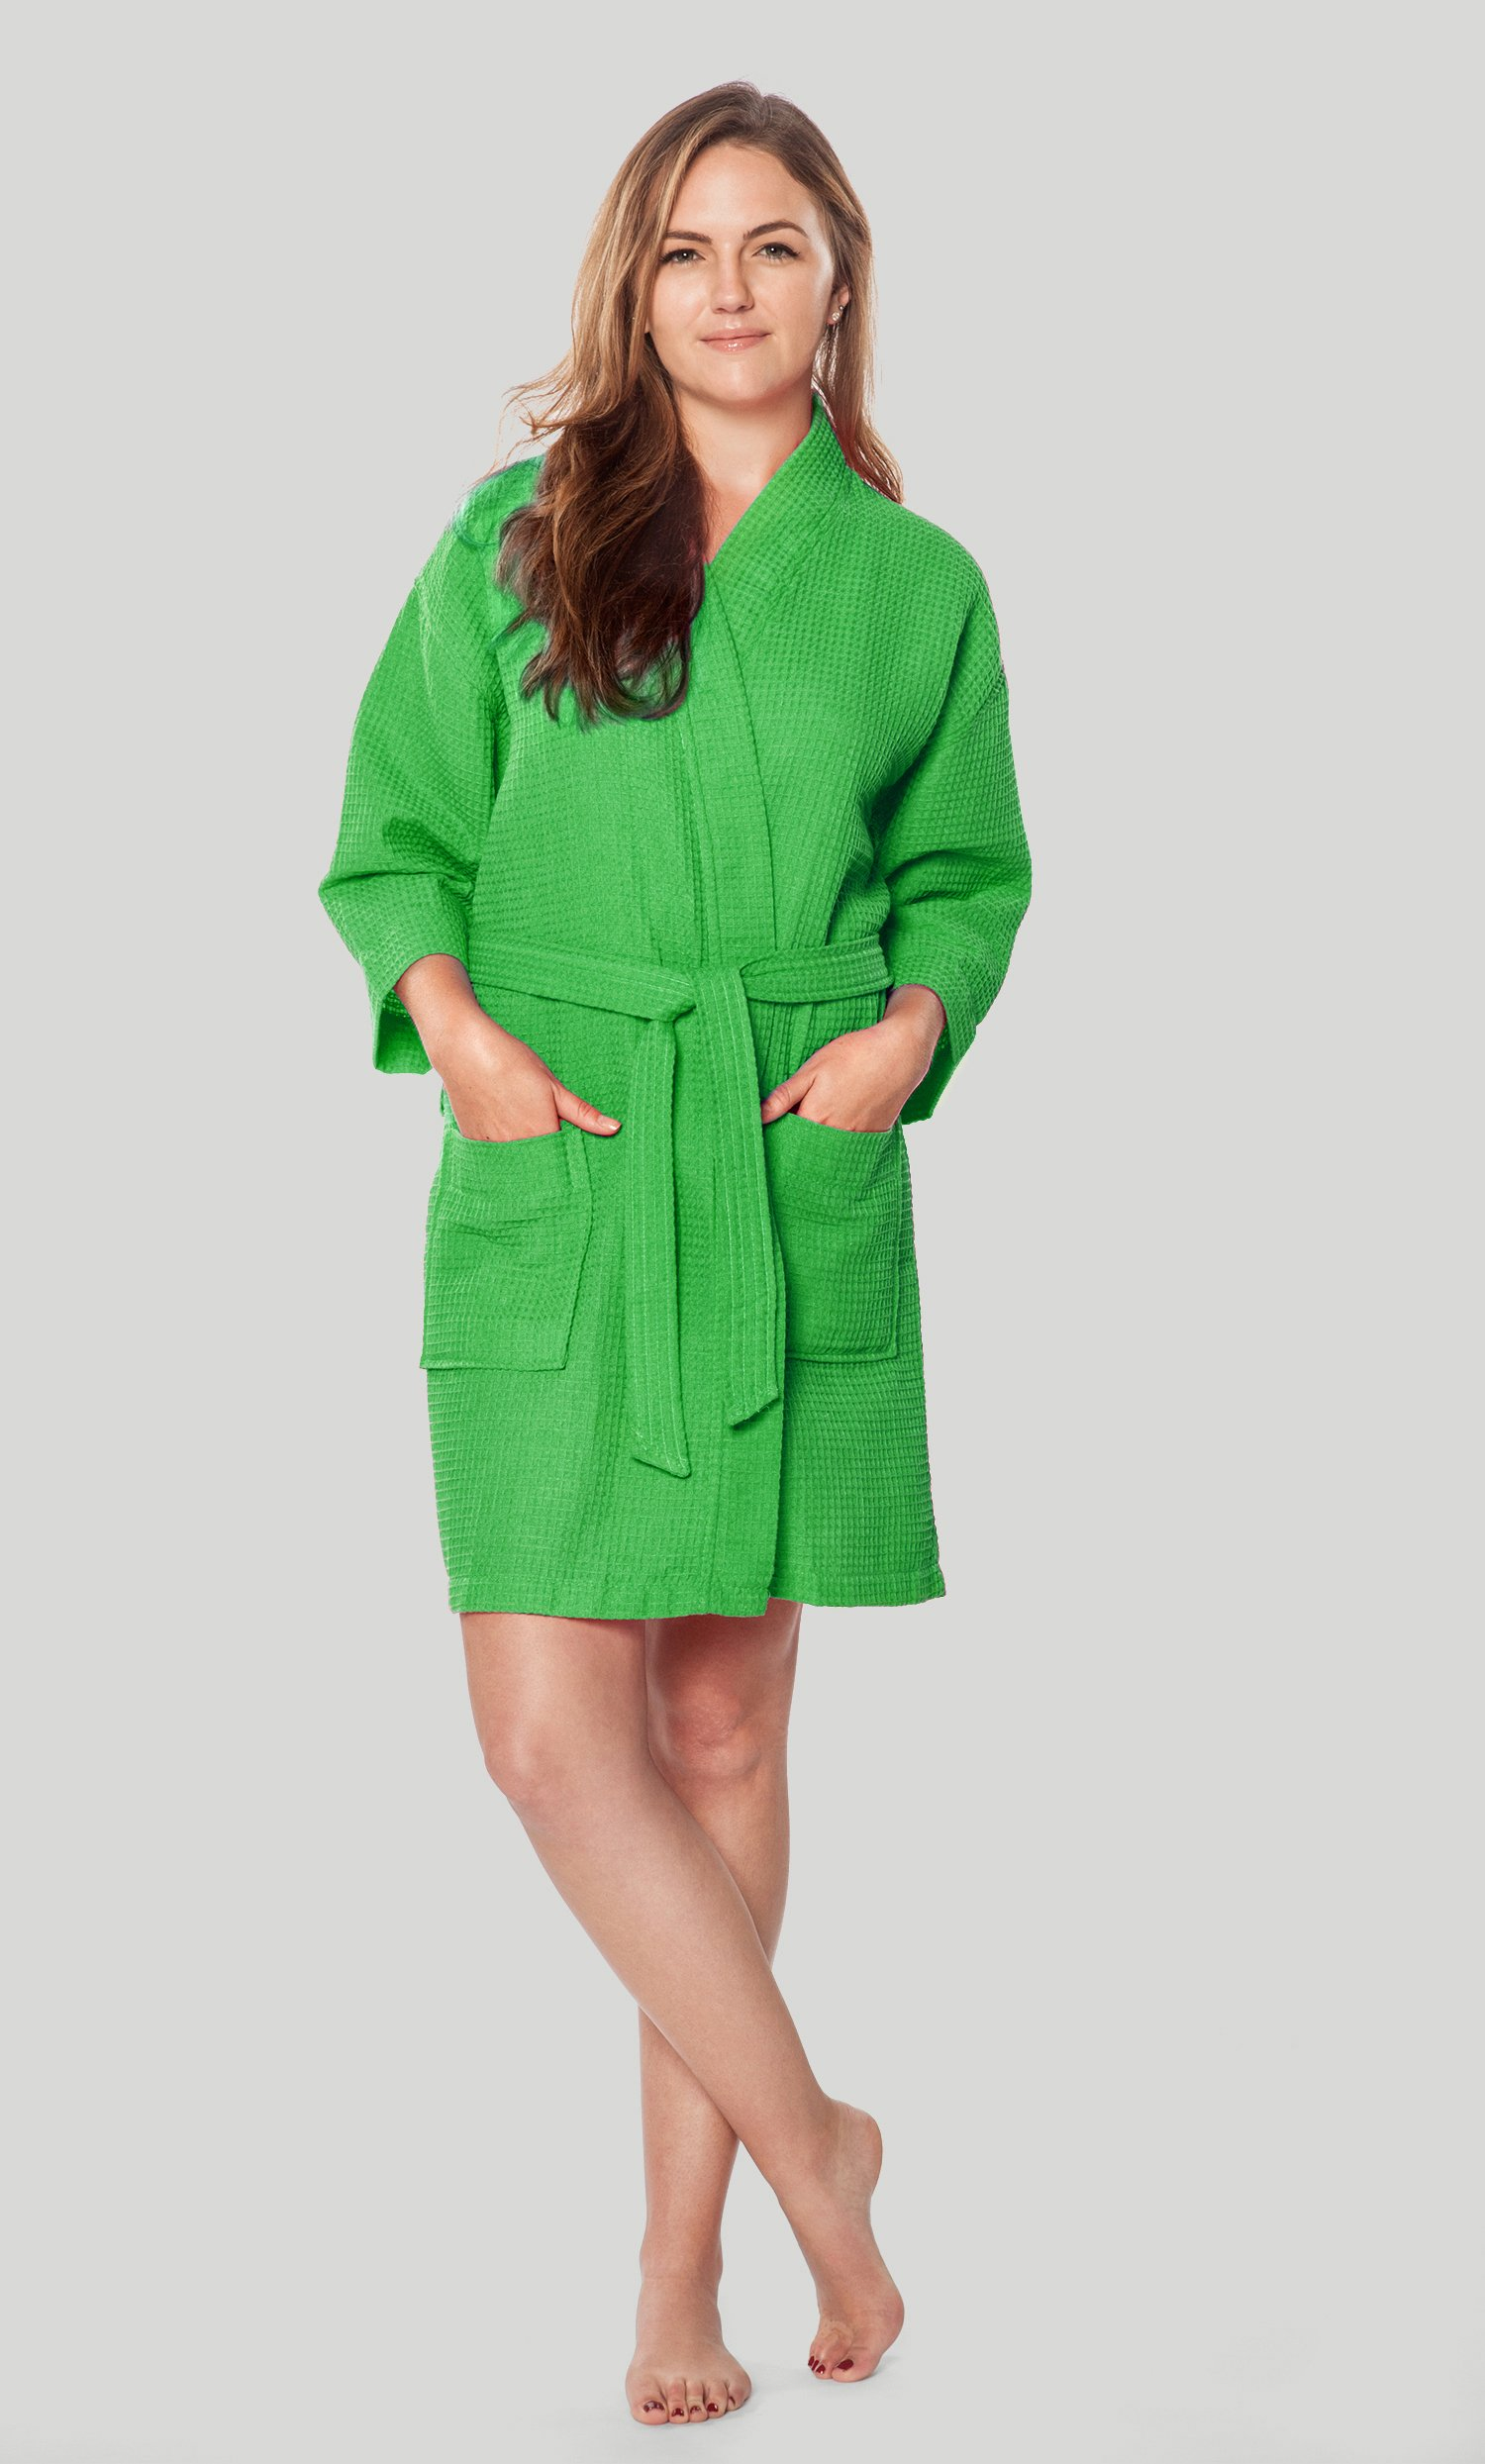 Economy Bathrobes    Thigh Length Waffle    Waffle Kimono Lime Green Short  Robe Square Pattern - Wholesale bathrobes 23f490fab